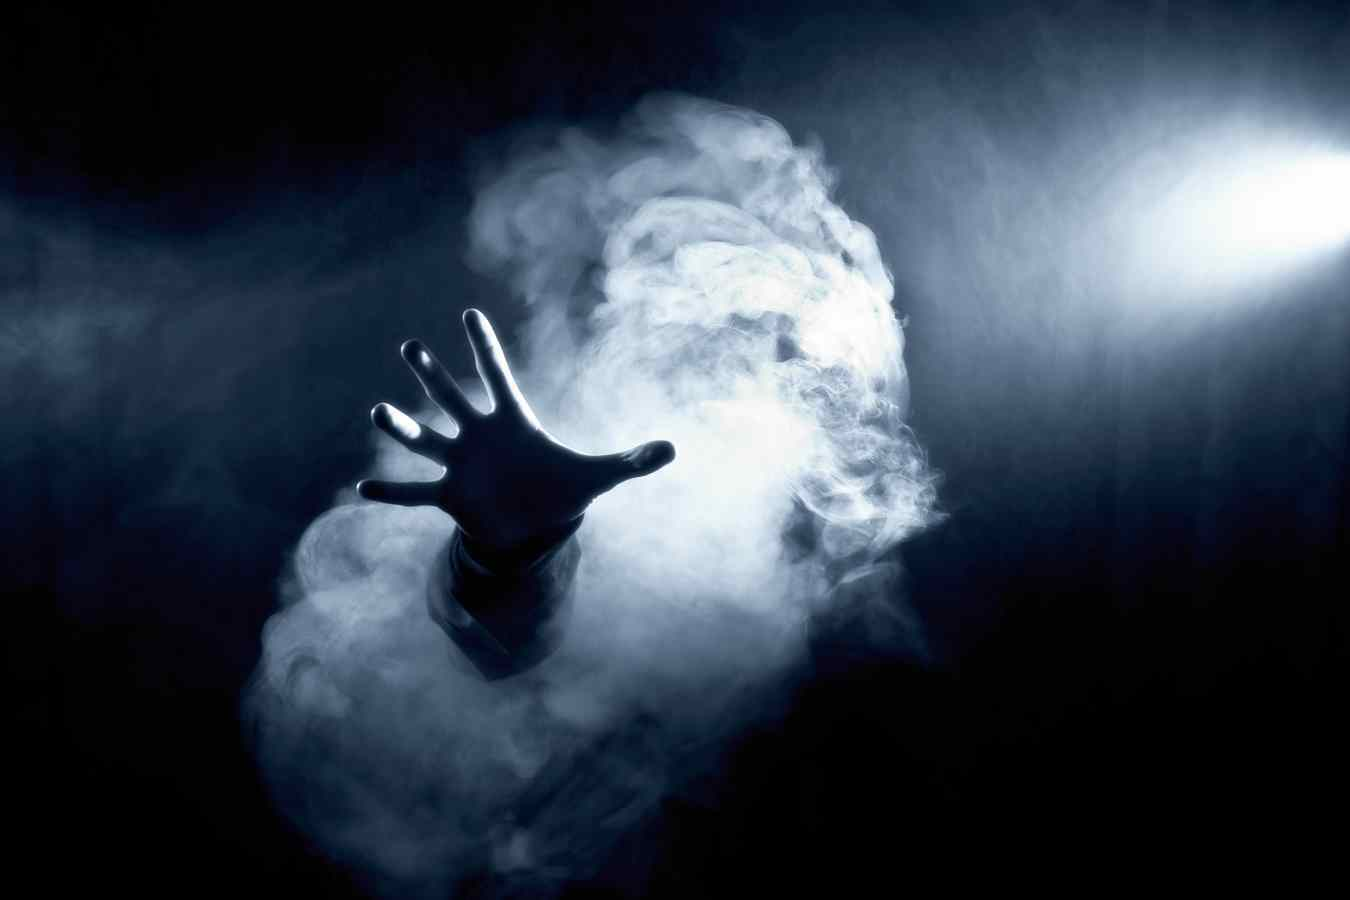 of the most terrifying two sentence horror stories ever told ghost hand smoke lights creepy horror fear ghost